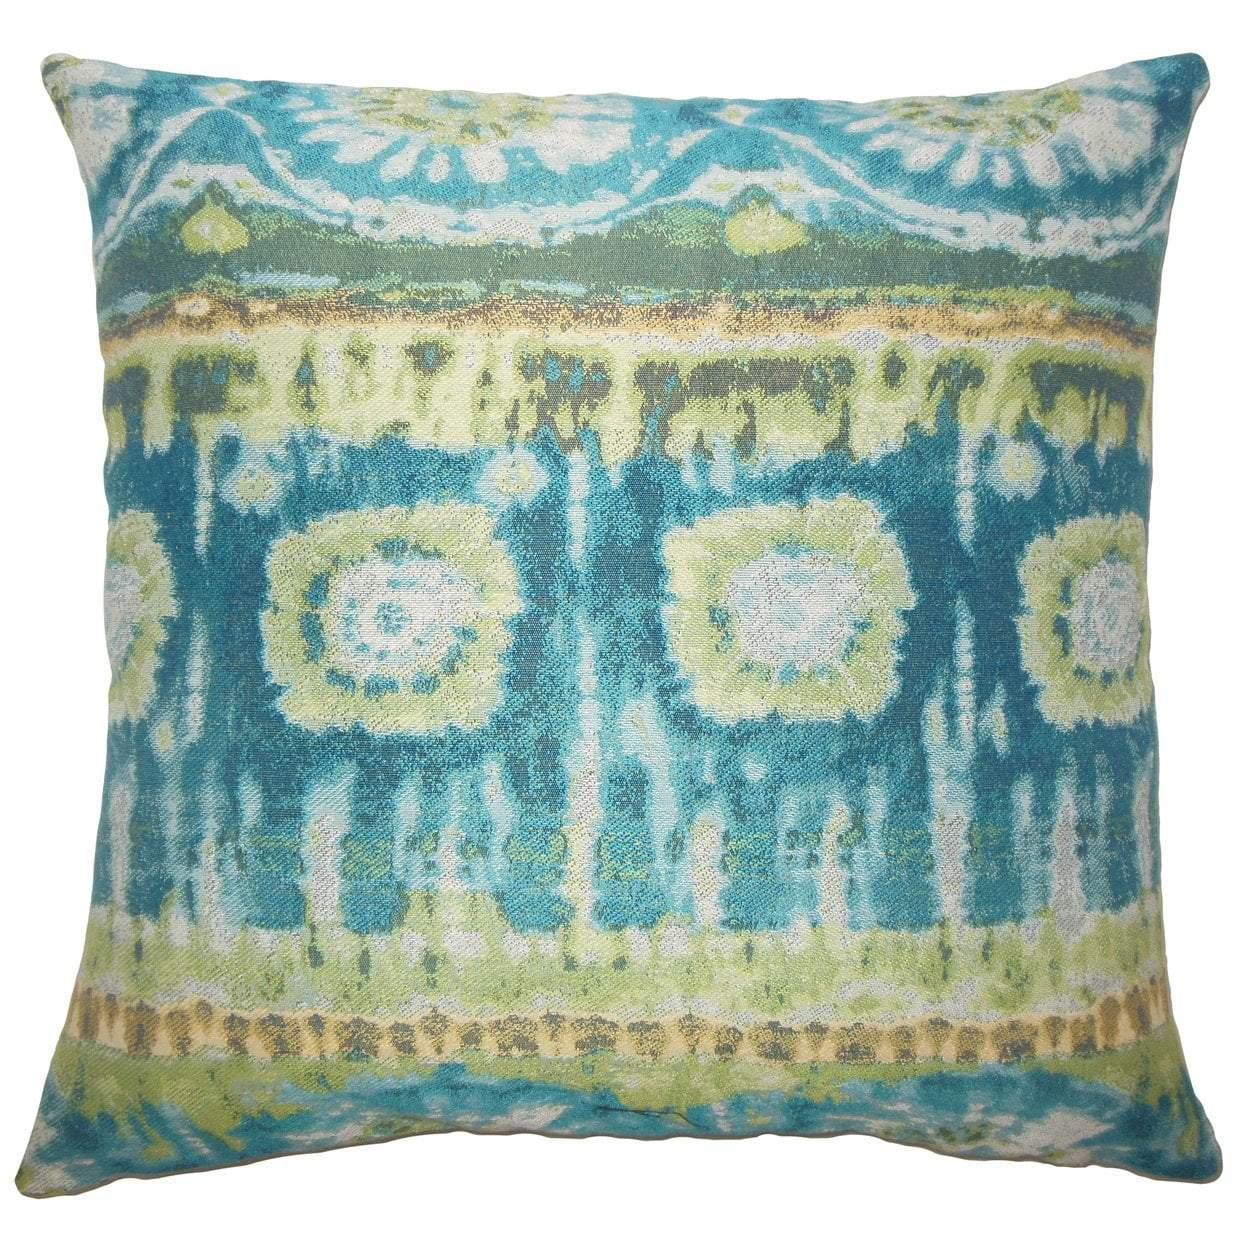 Sheahan Throw Pillow Cover